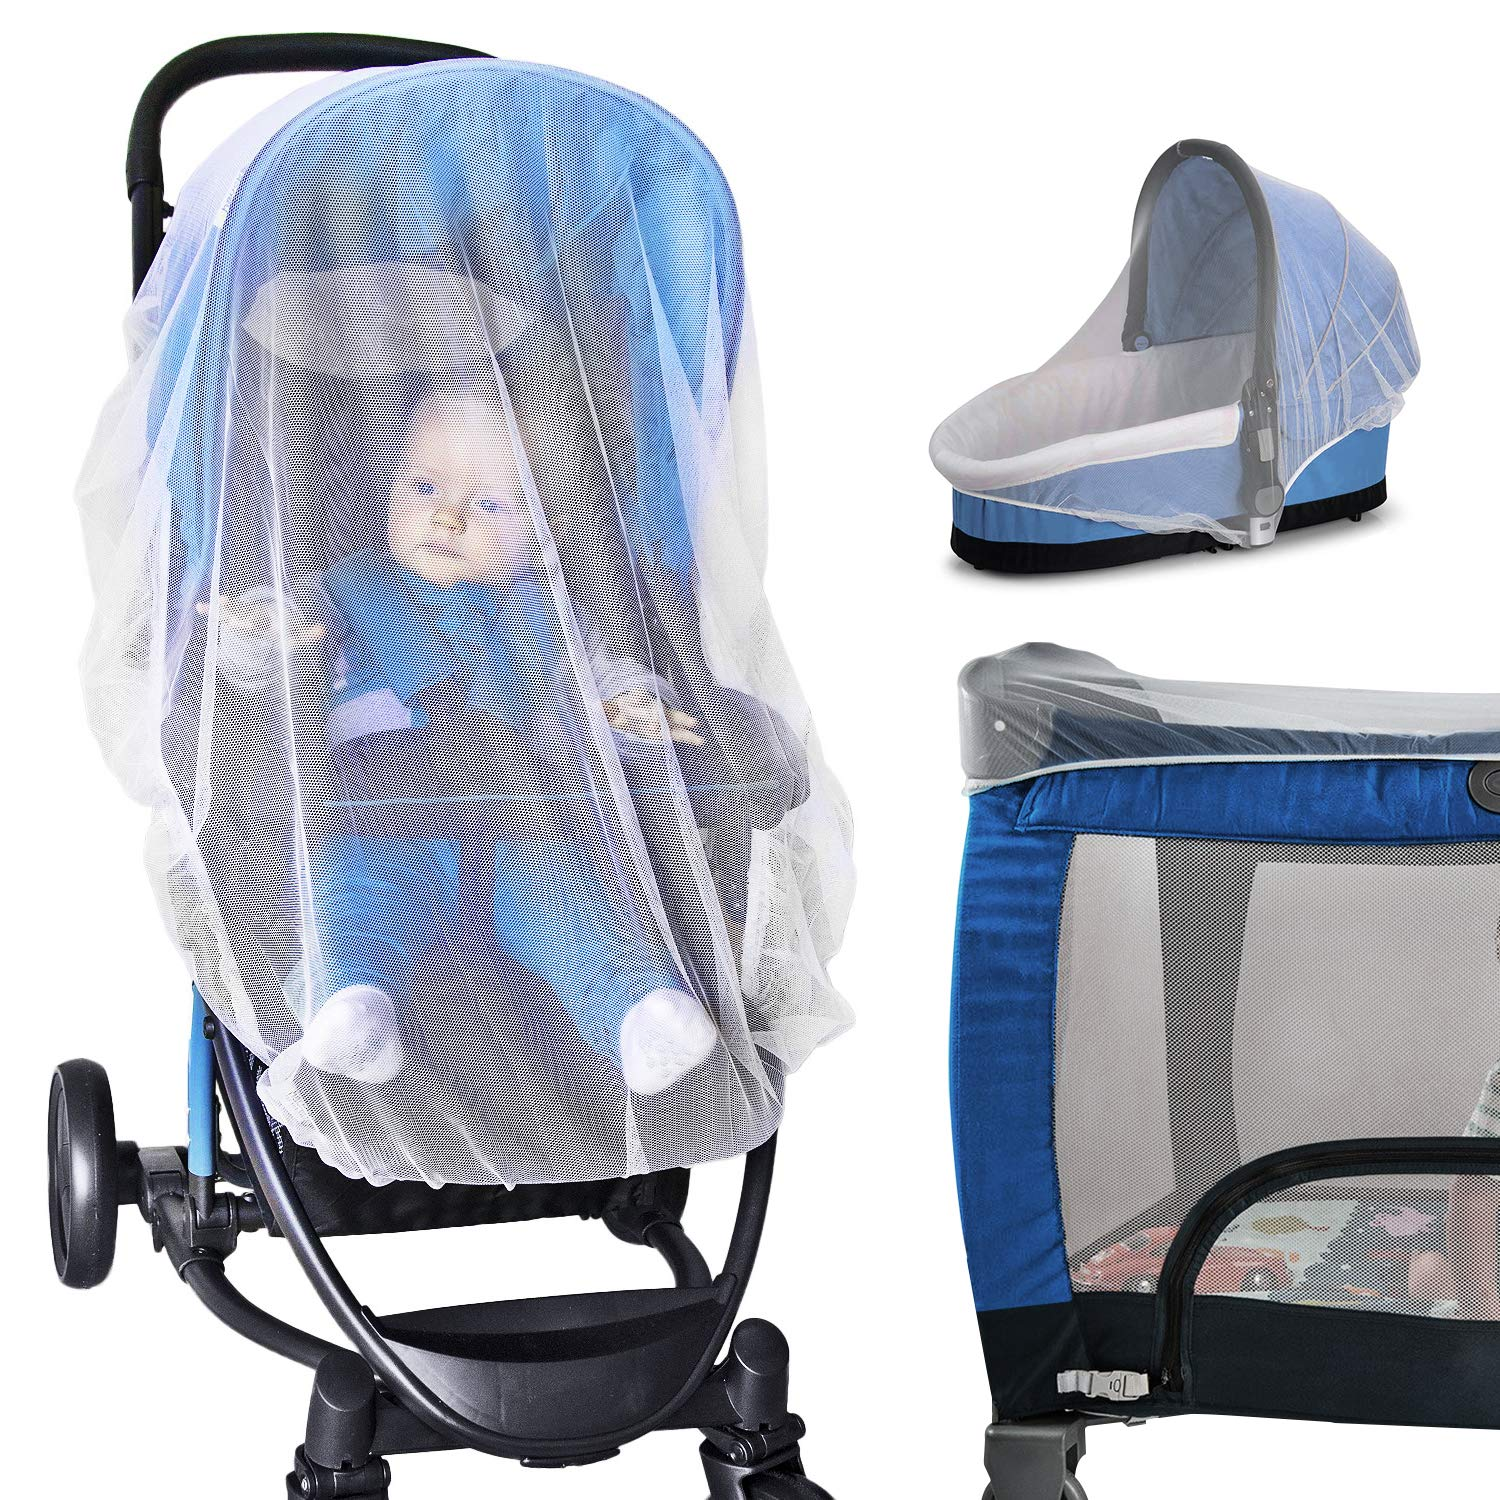 Baby Ziz Drawstring Baby Mosquito Net for Stroller White Insect Mesh Netting Cover with Universal Fit Pack and Play Baby Travel Gear for Outdoor Bug Protection Infant Carrier Car Seat Bassinet